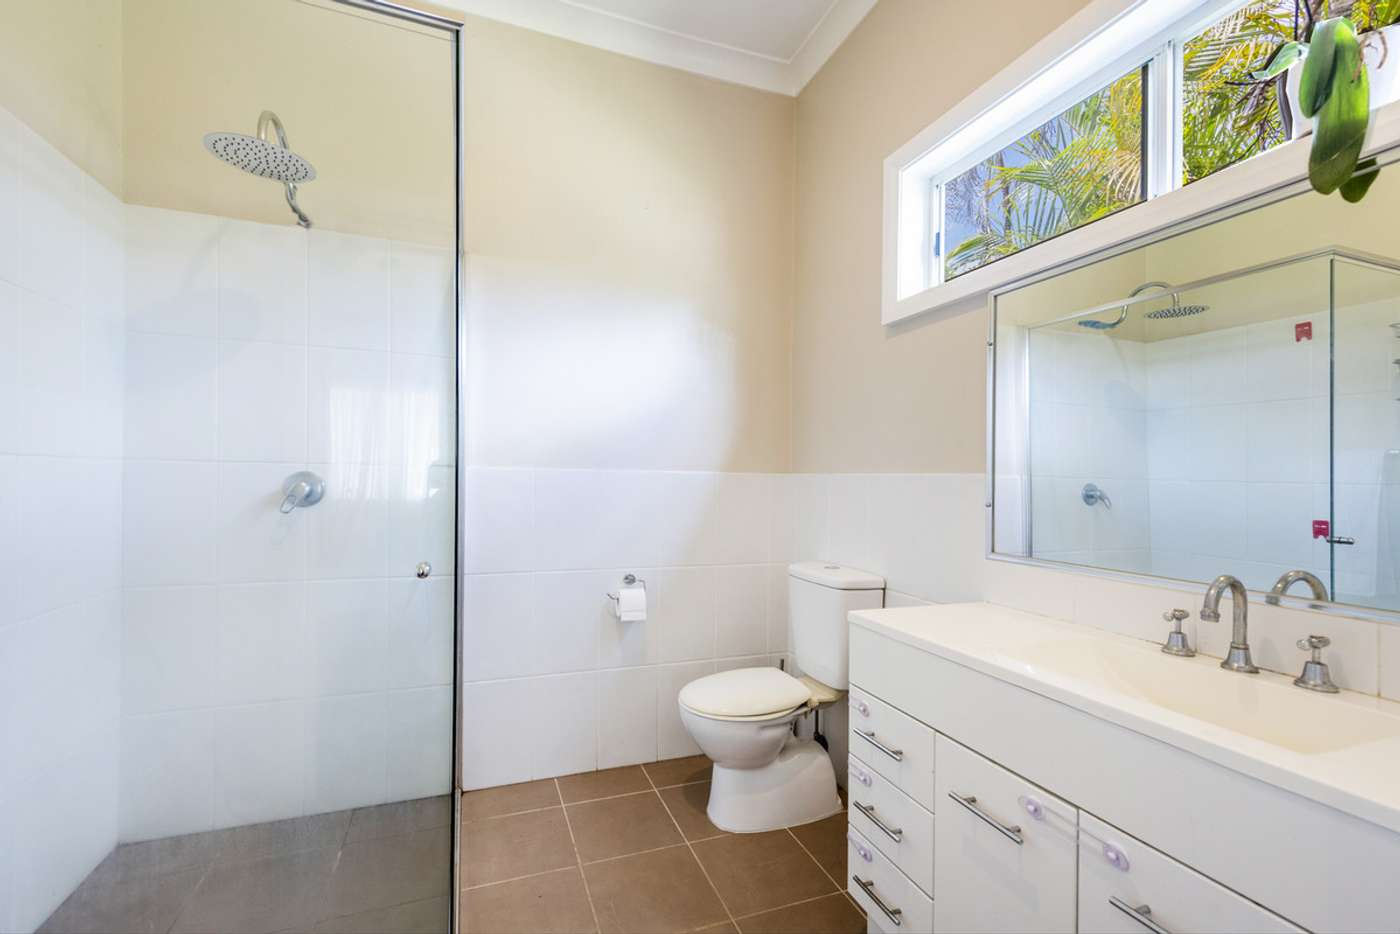 Sixth view of Homely house listing, 135 Bent Street, South Grafton NSW 2460